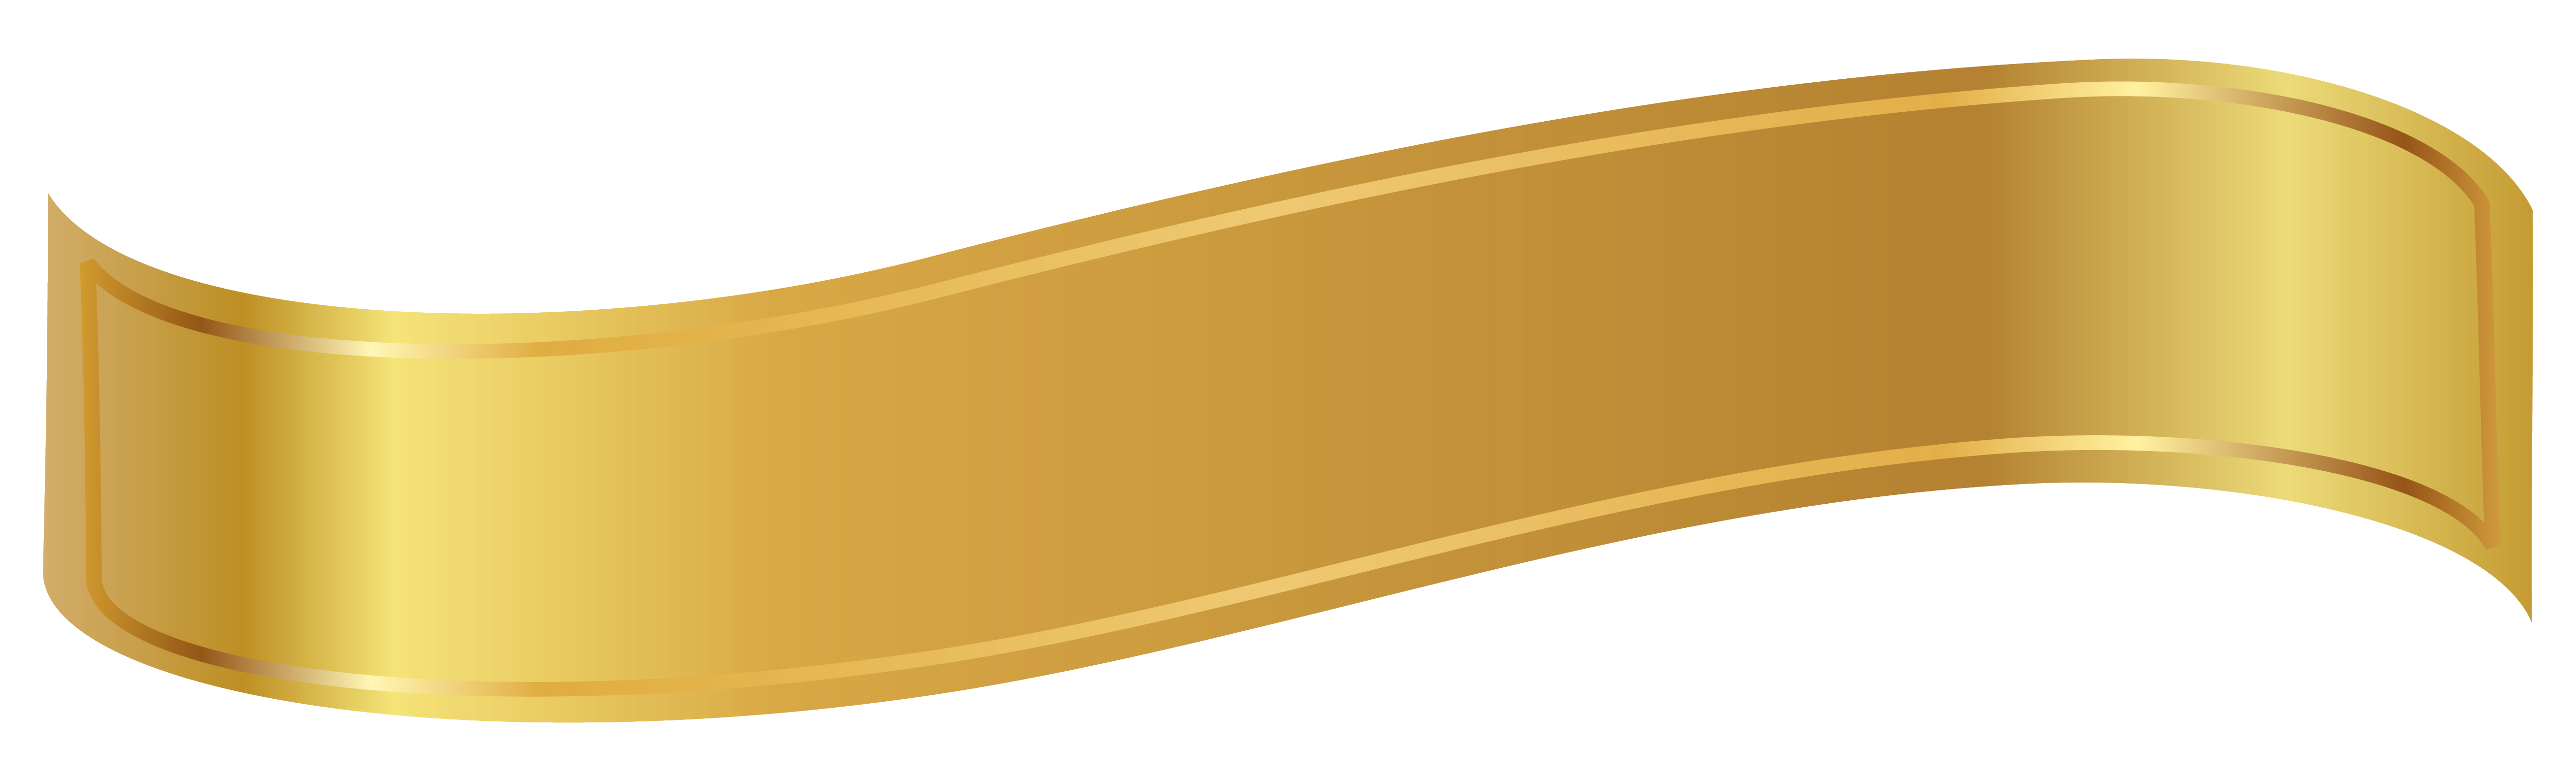 Gold banner ribbon png. Clipart image gallery yopriceville